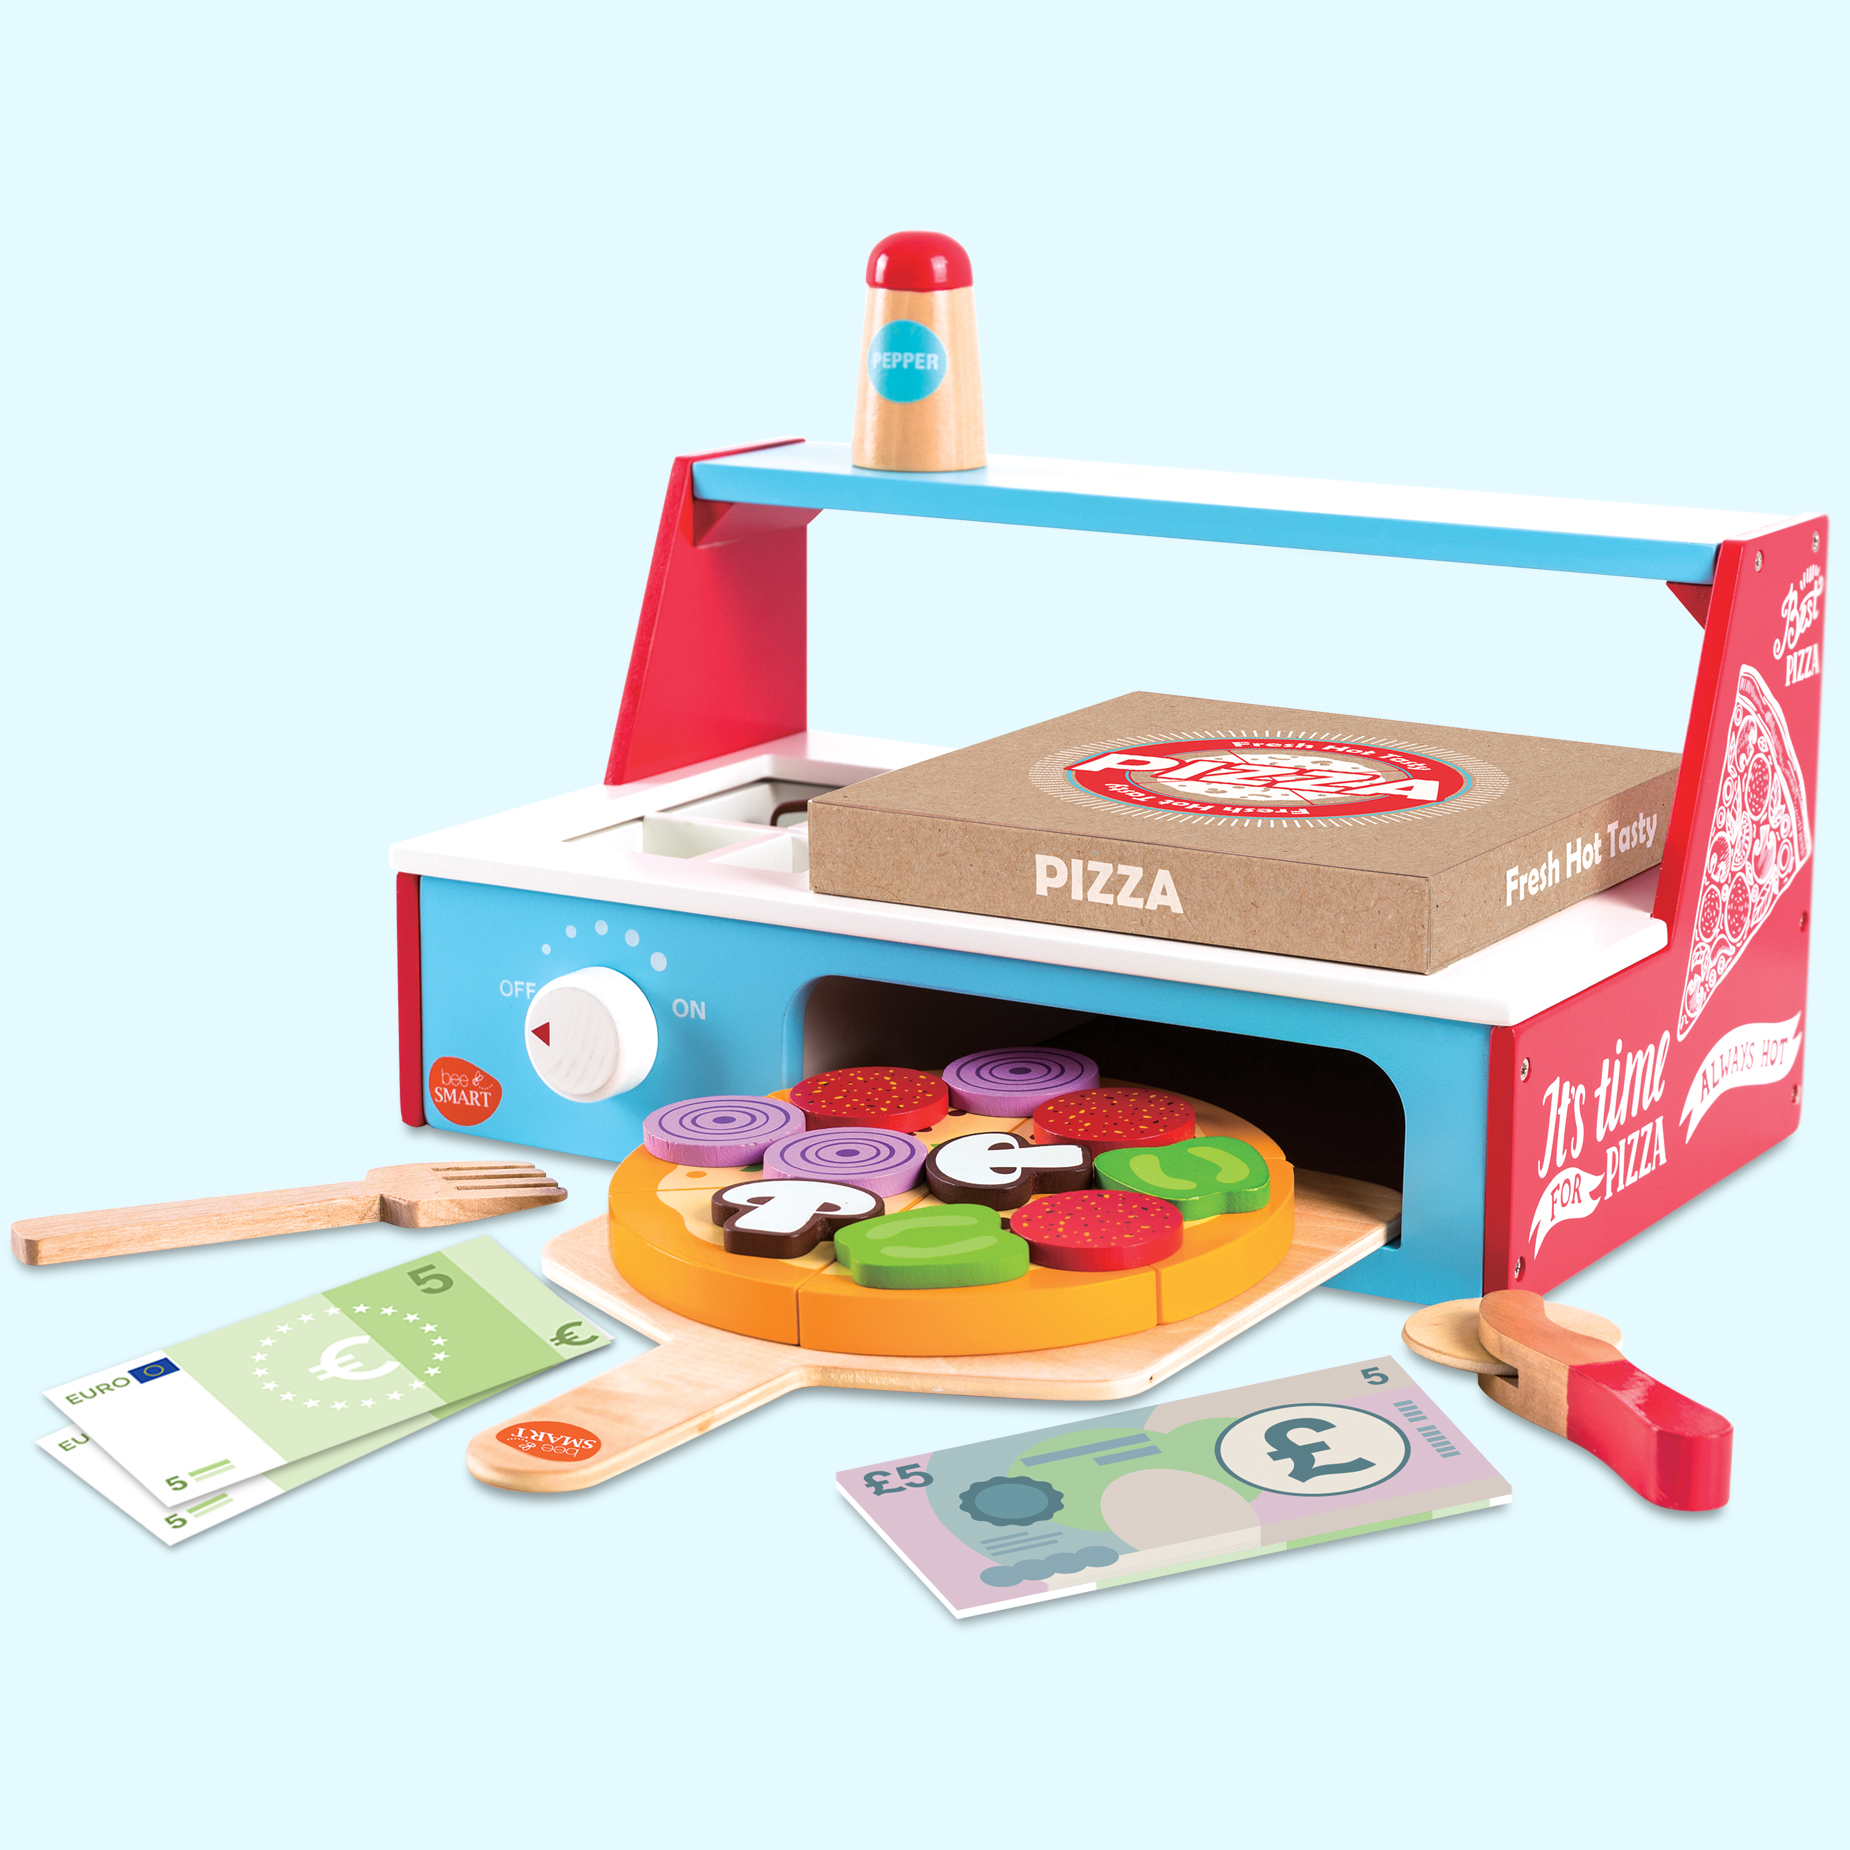 Wooden Pizza Oven With Accessories Playset